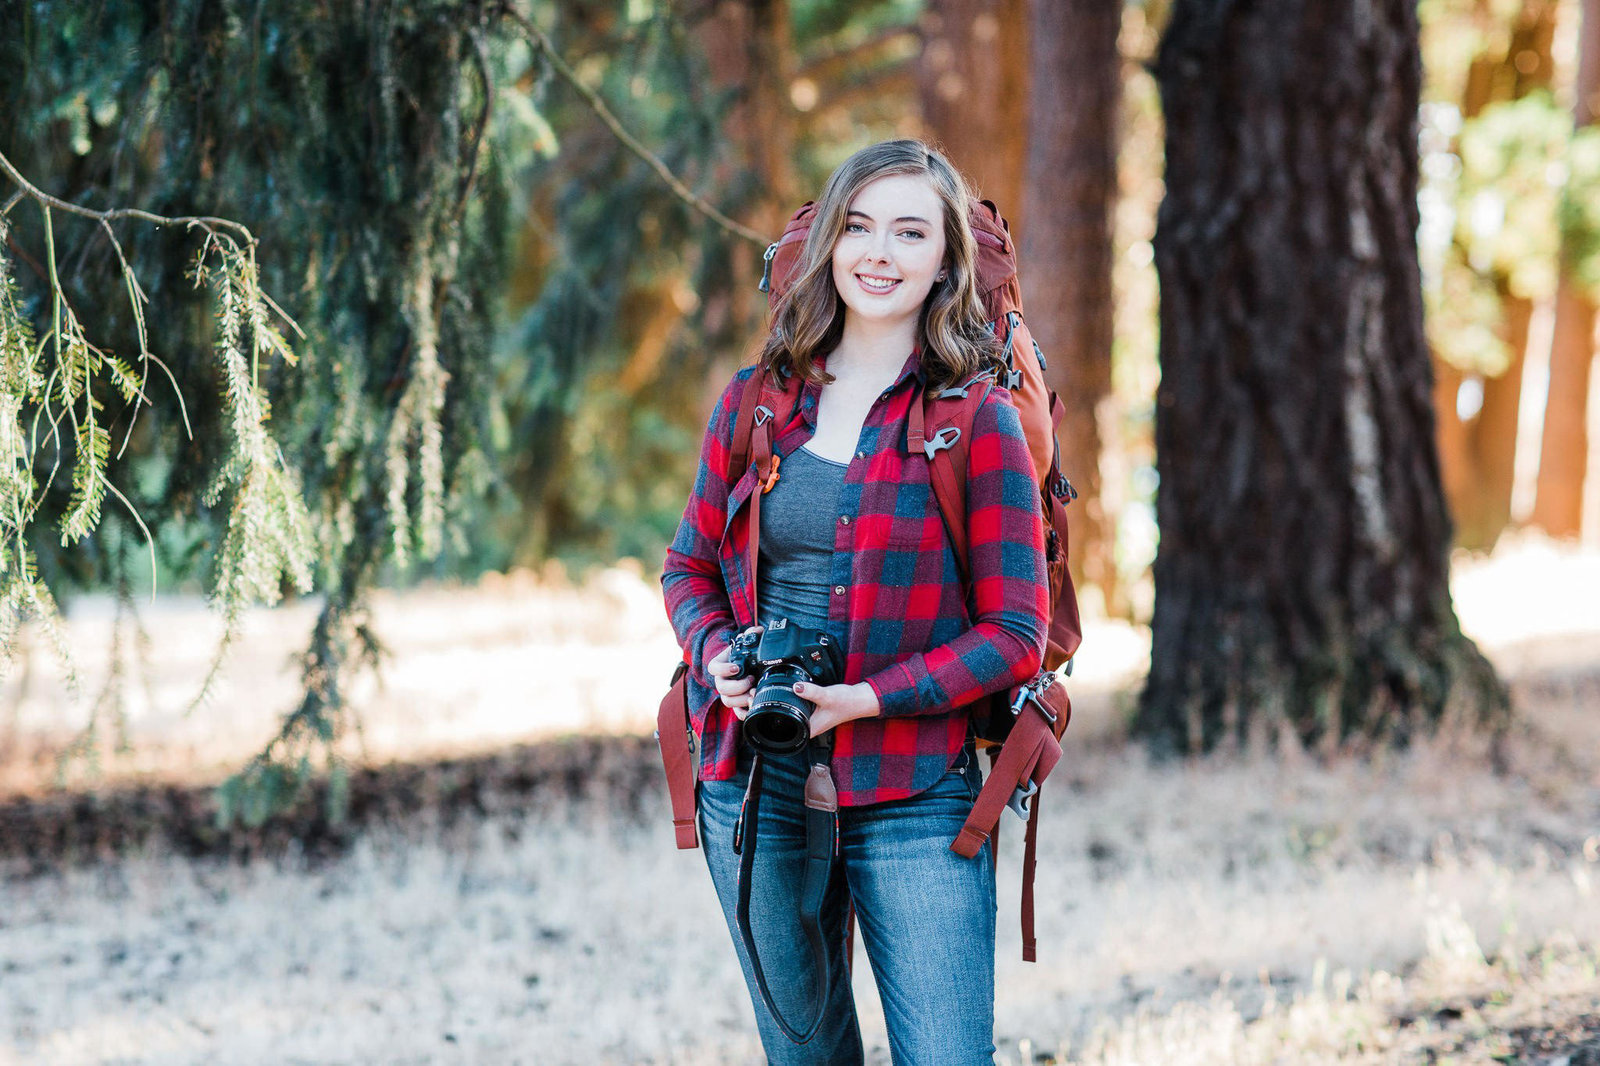 021-west-seattle-senior-photos-lincoln-park-amy-galbraith-mckenzie